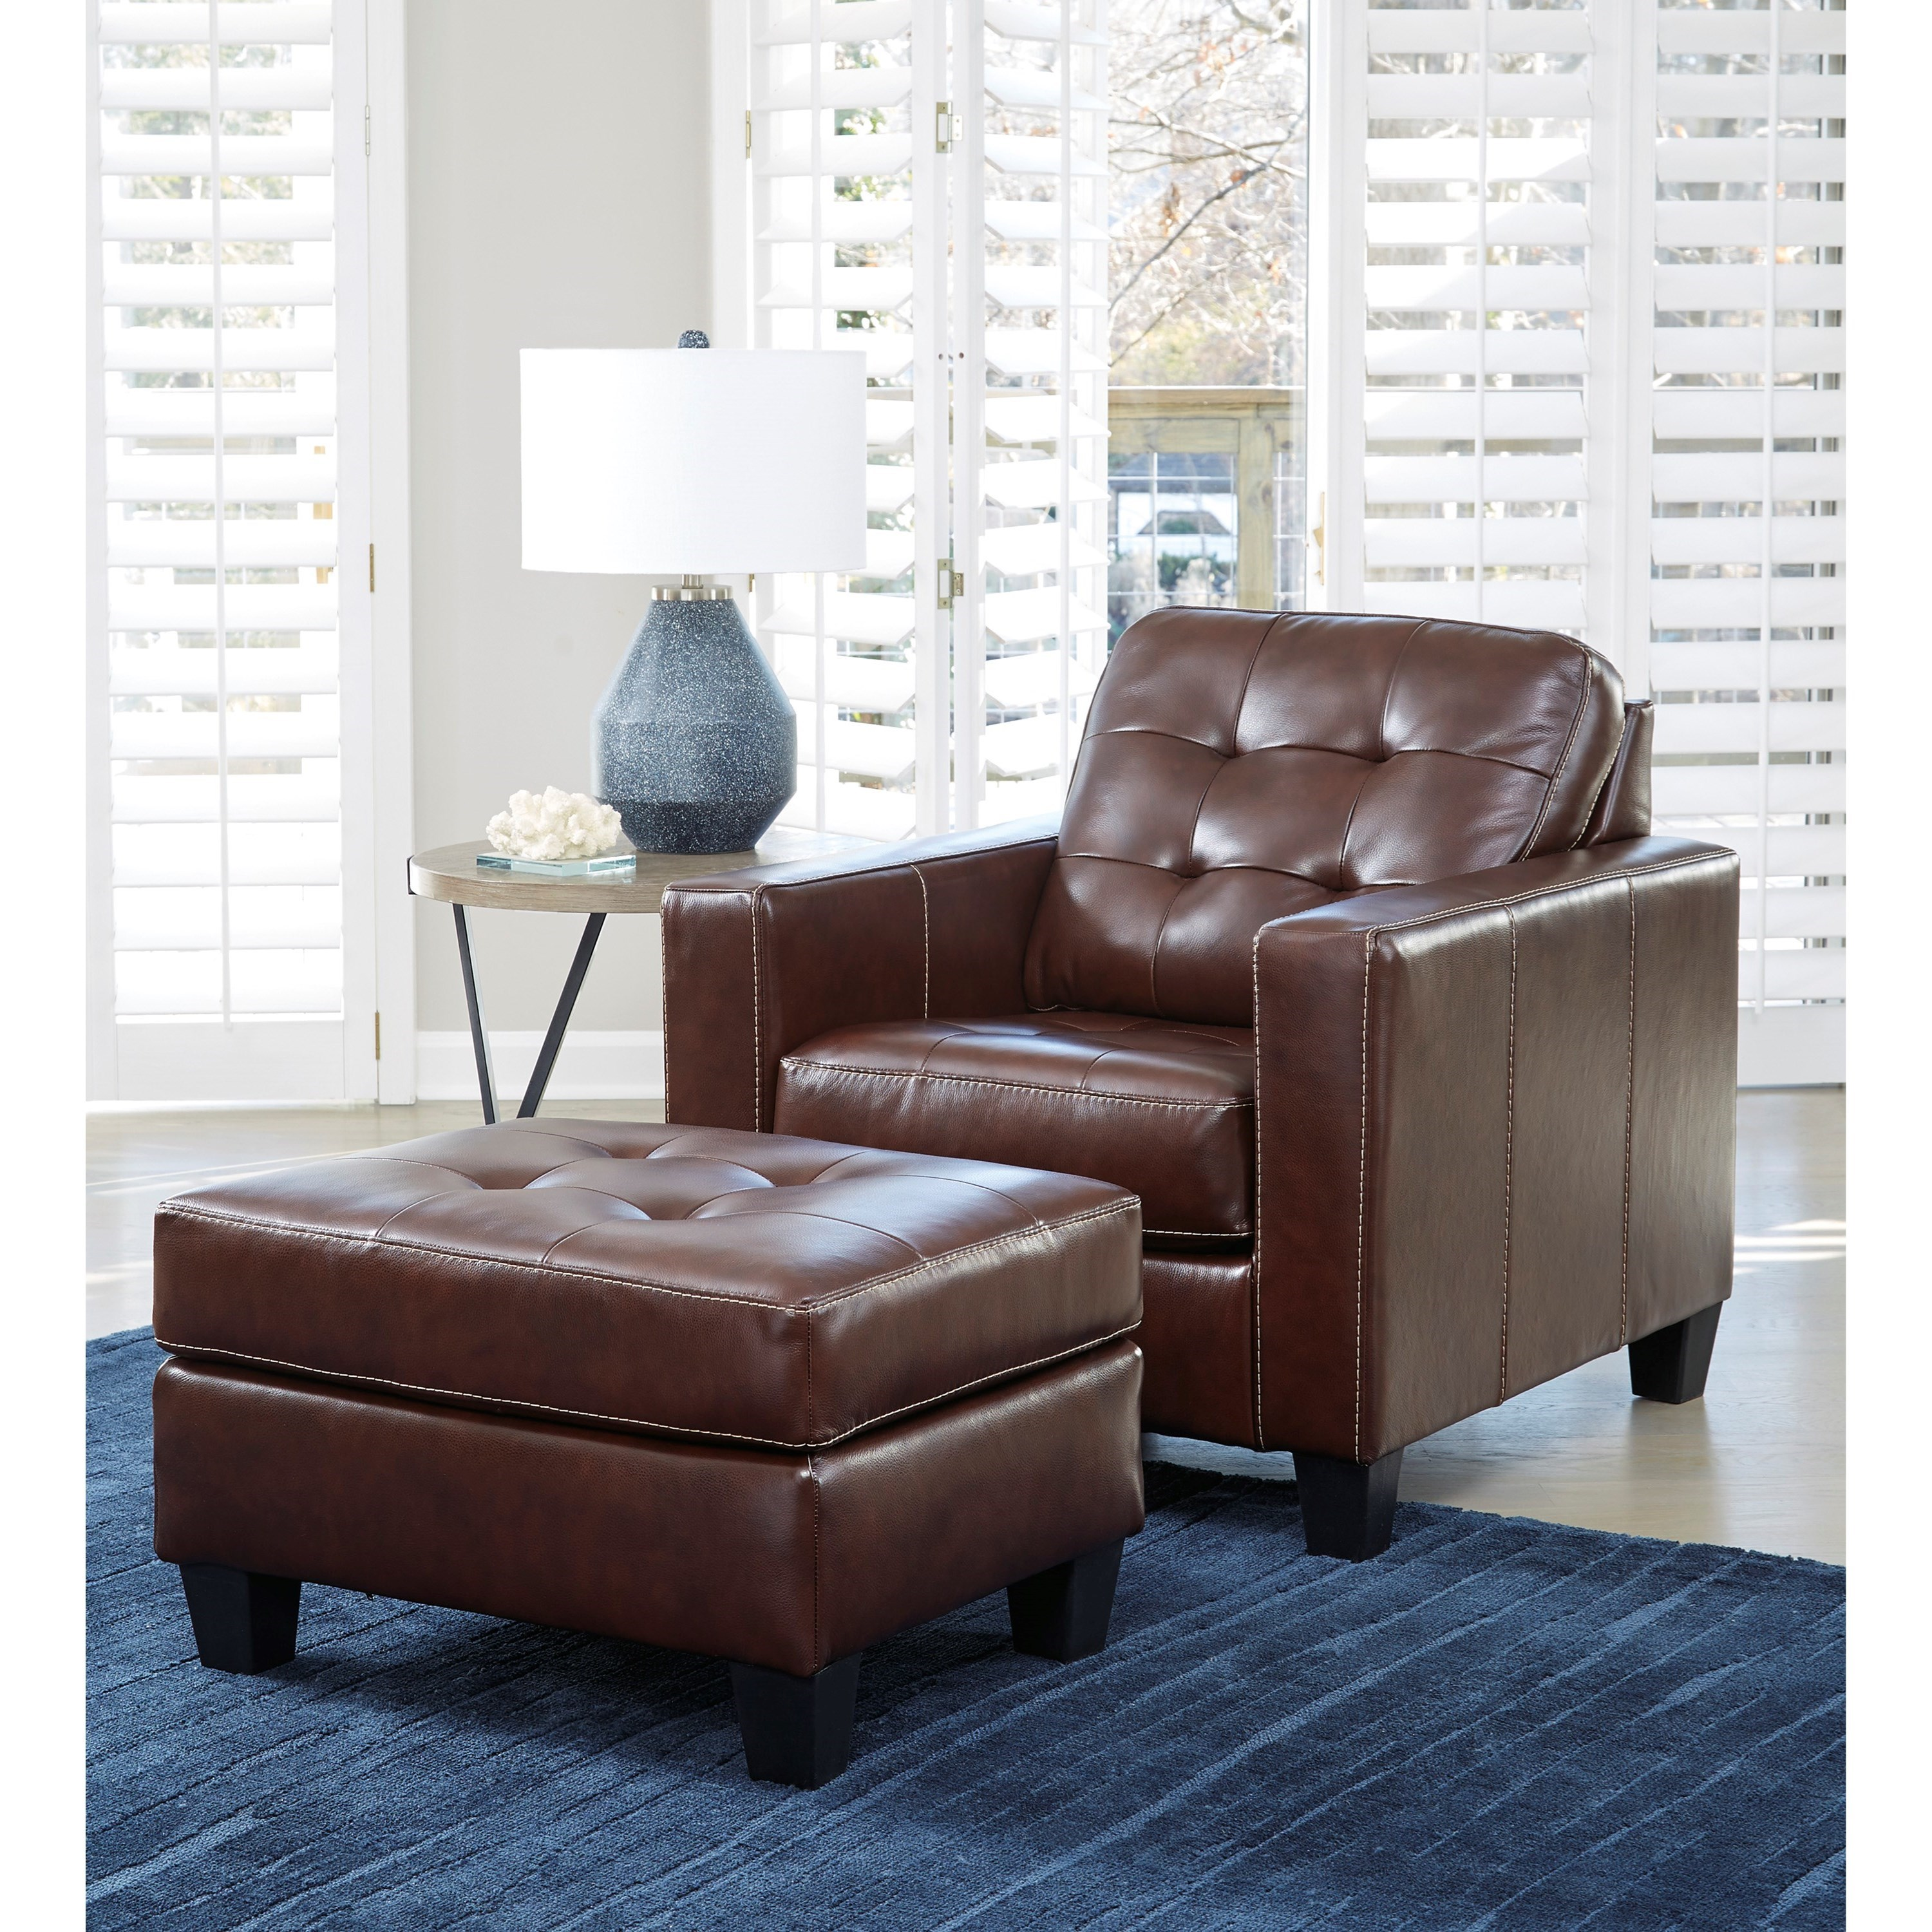 Altonbury Chair and Ottoman Set by Signature Design by Ashley at Household Furniture